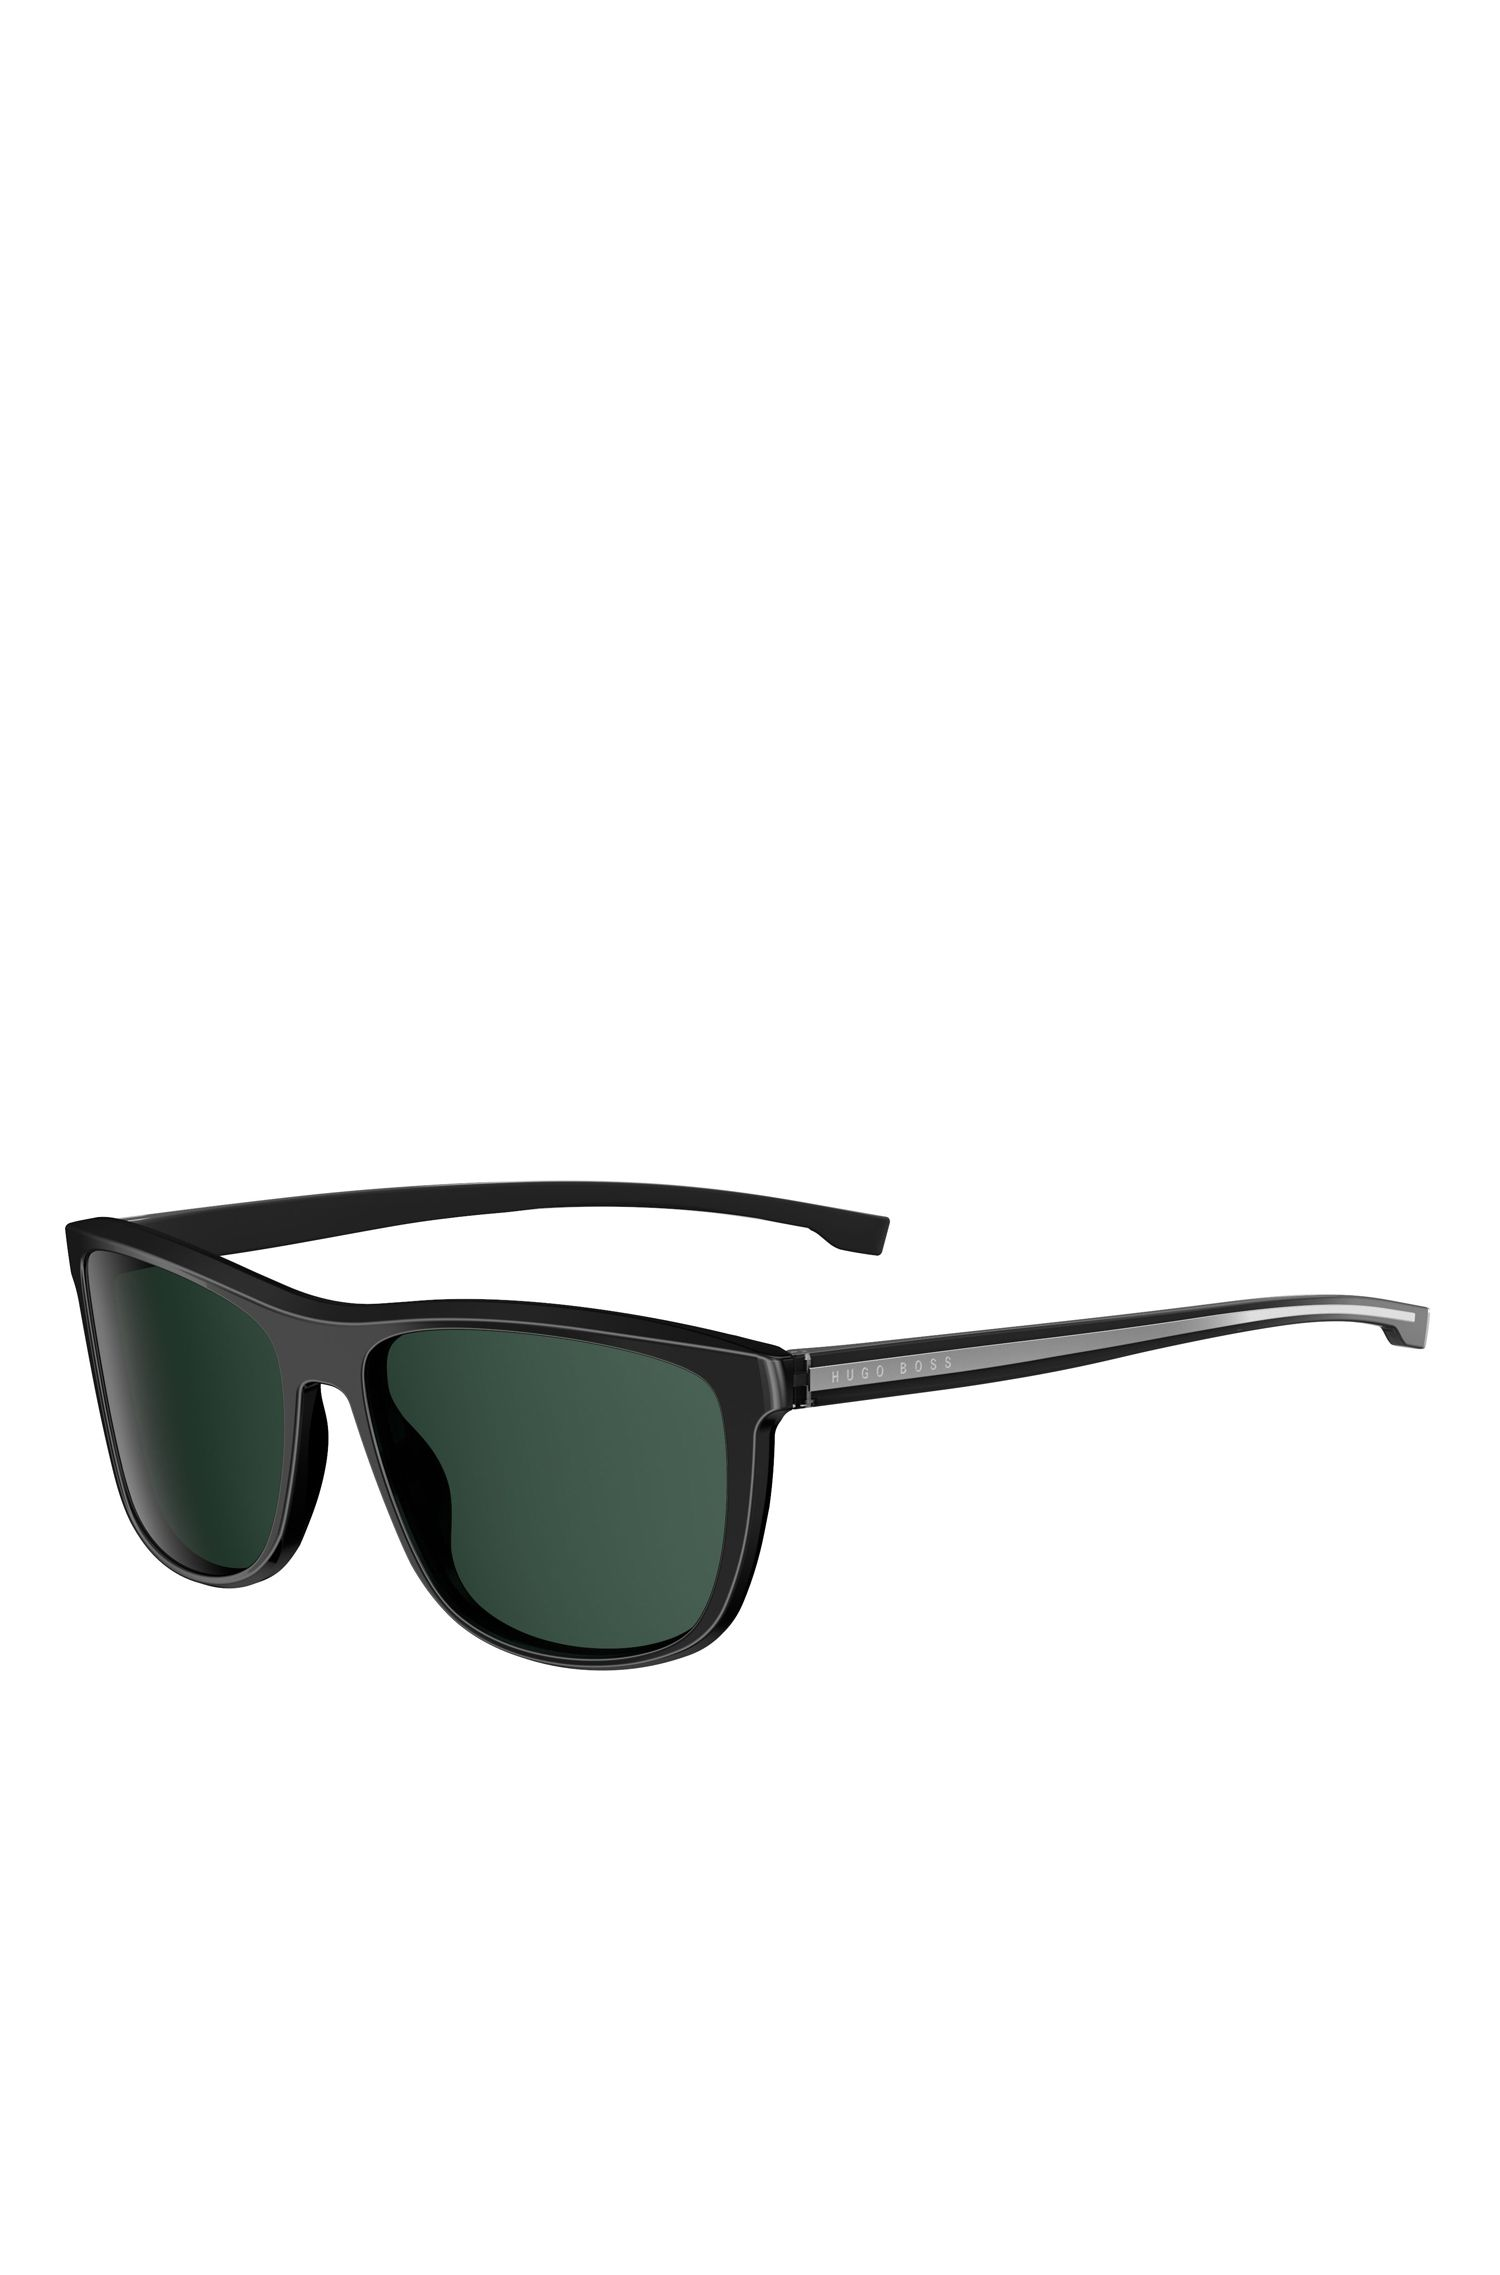 Black Lens Top Bar Sunglasses | BOSS 0874S